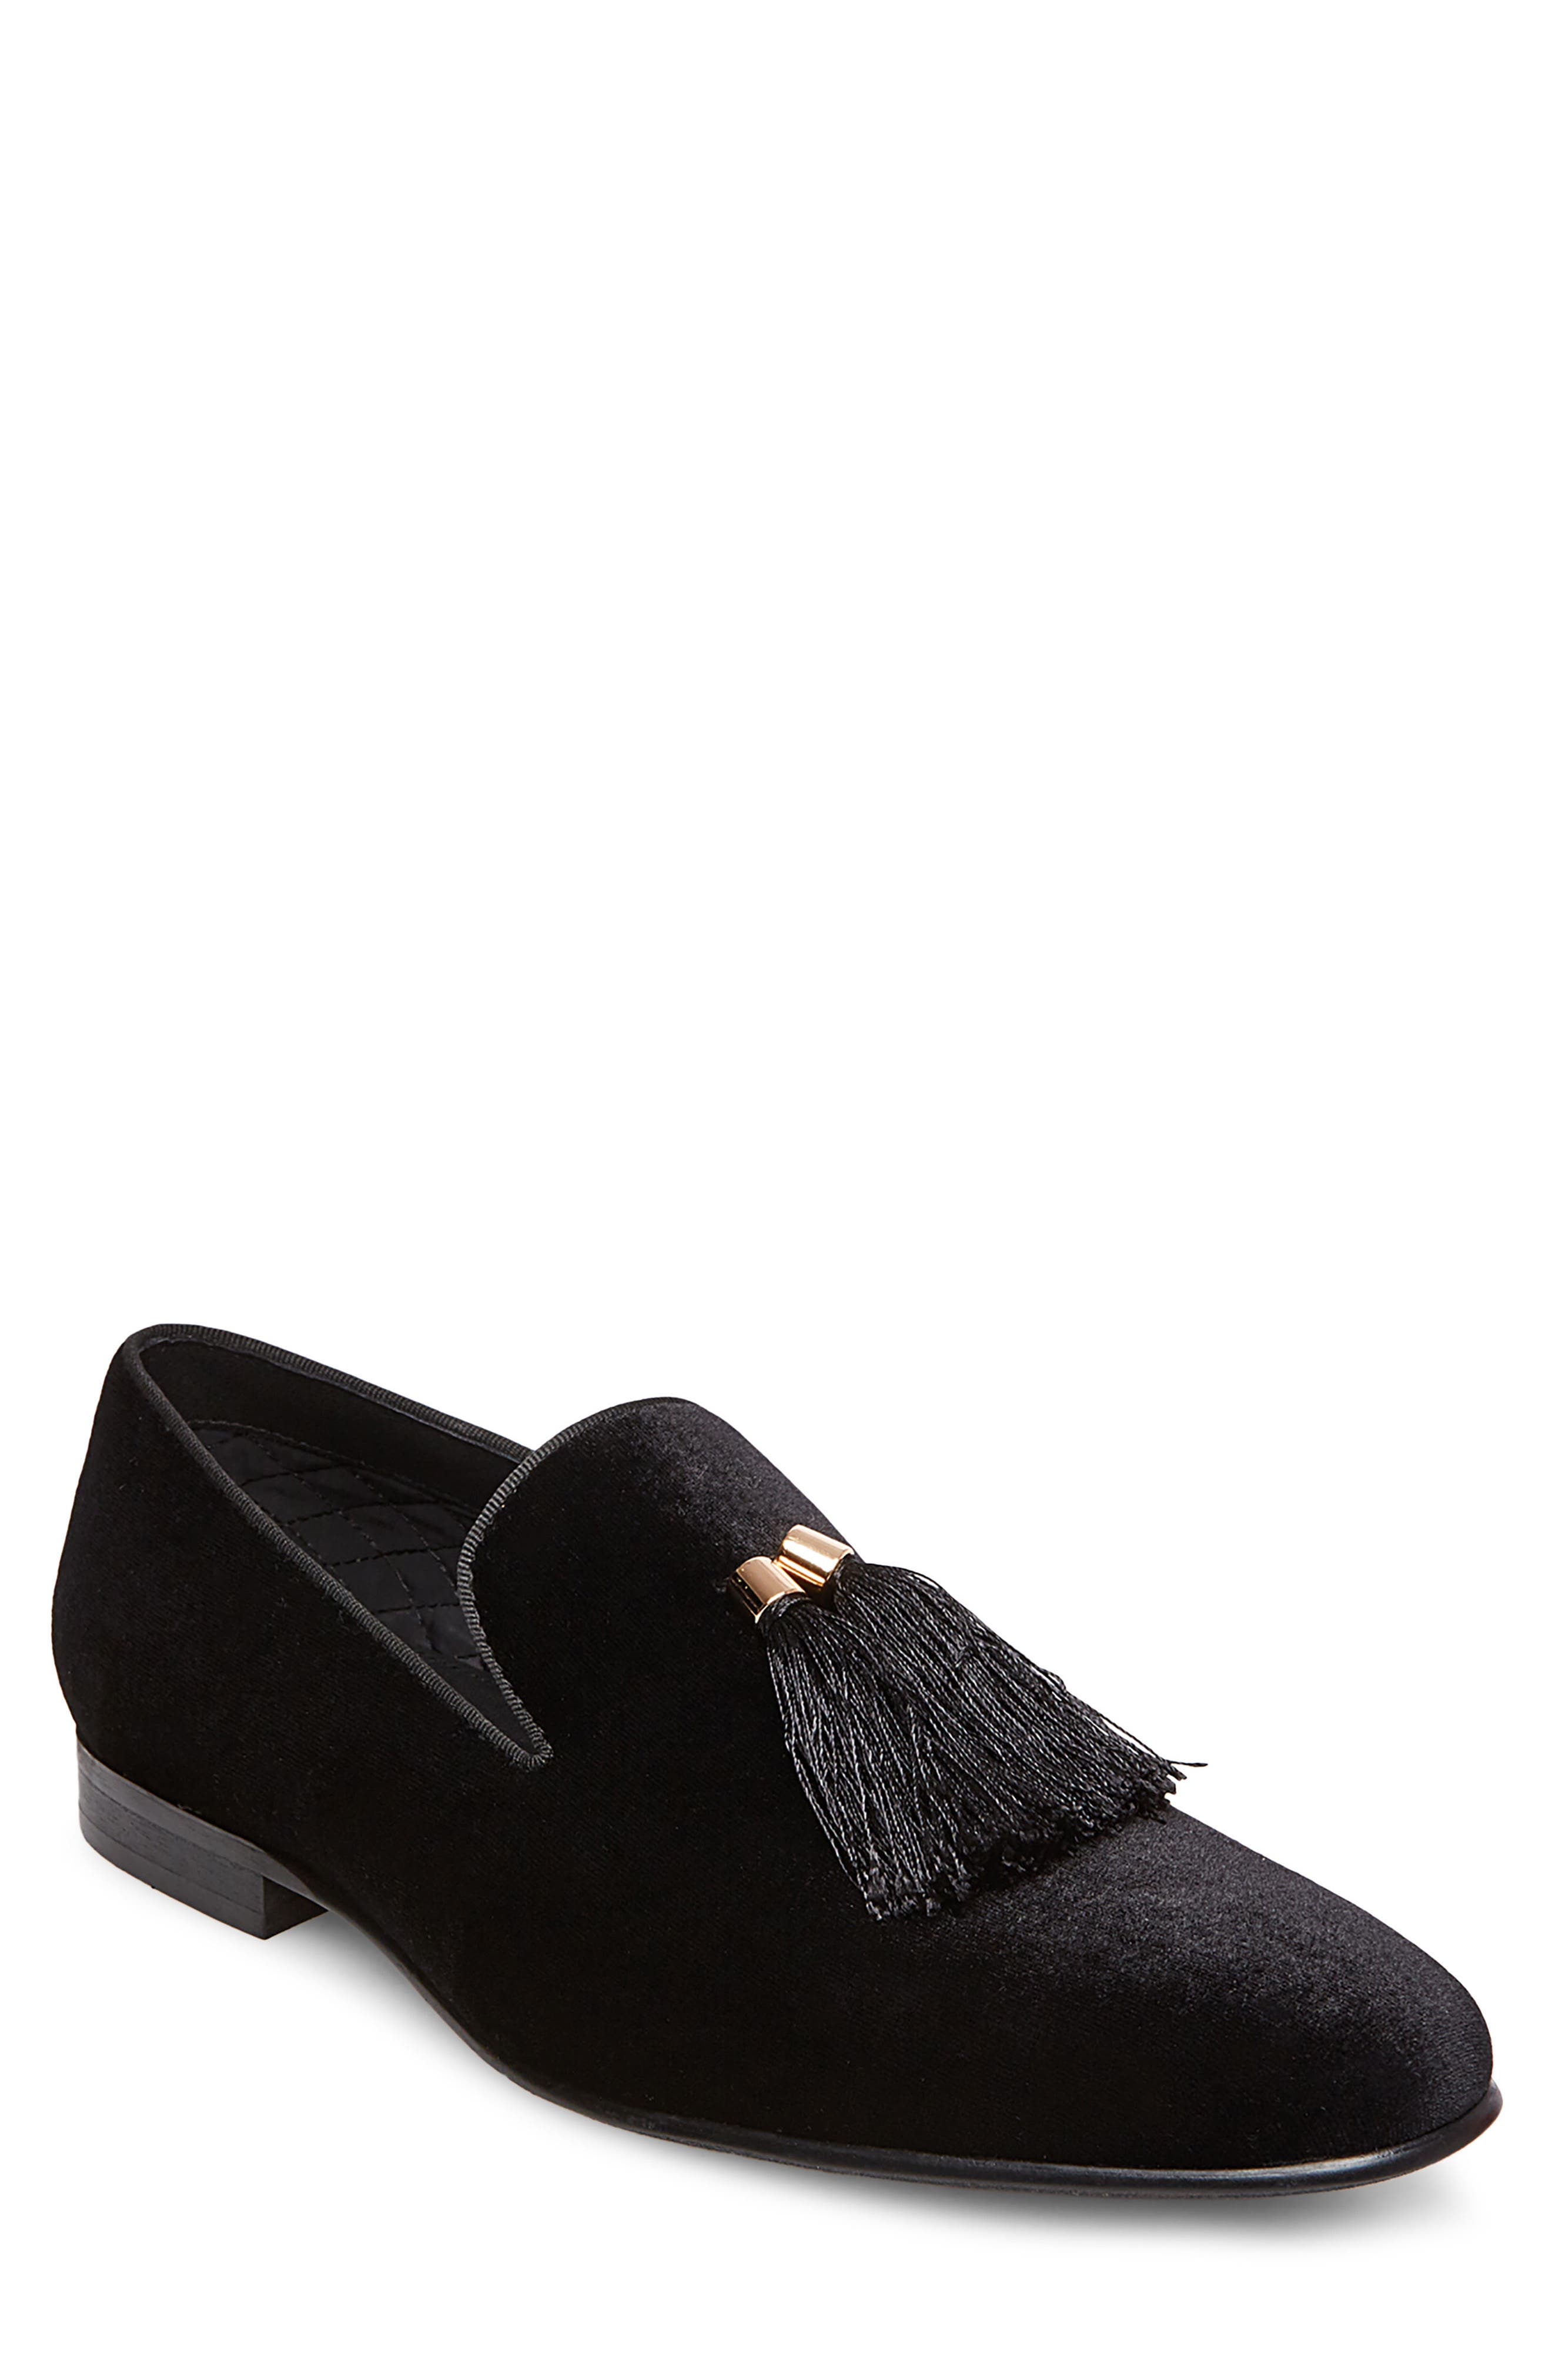 Liberty Tassel Loafer,                         Main,                         color,